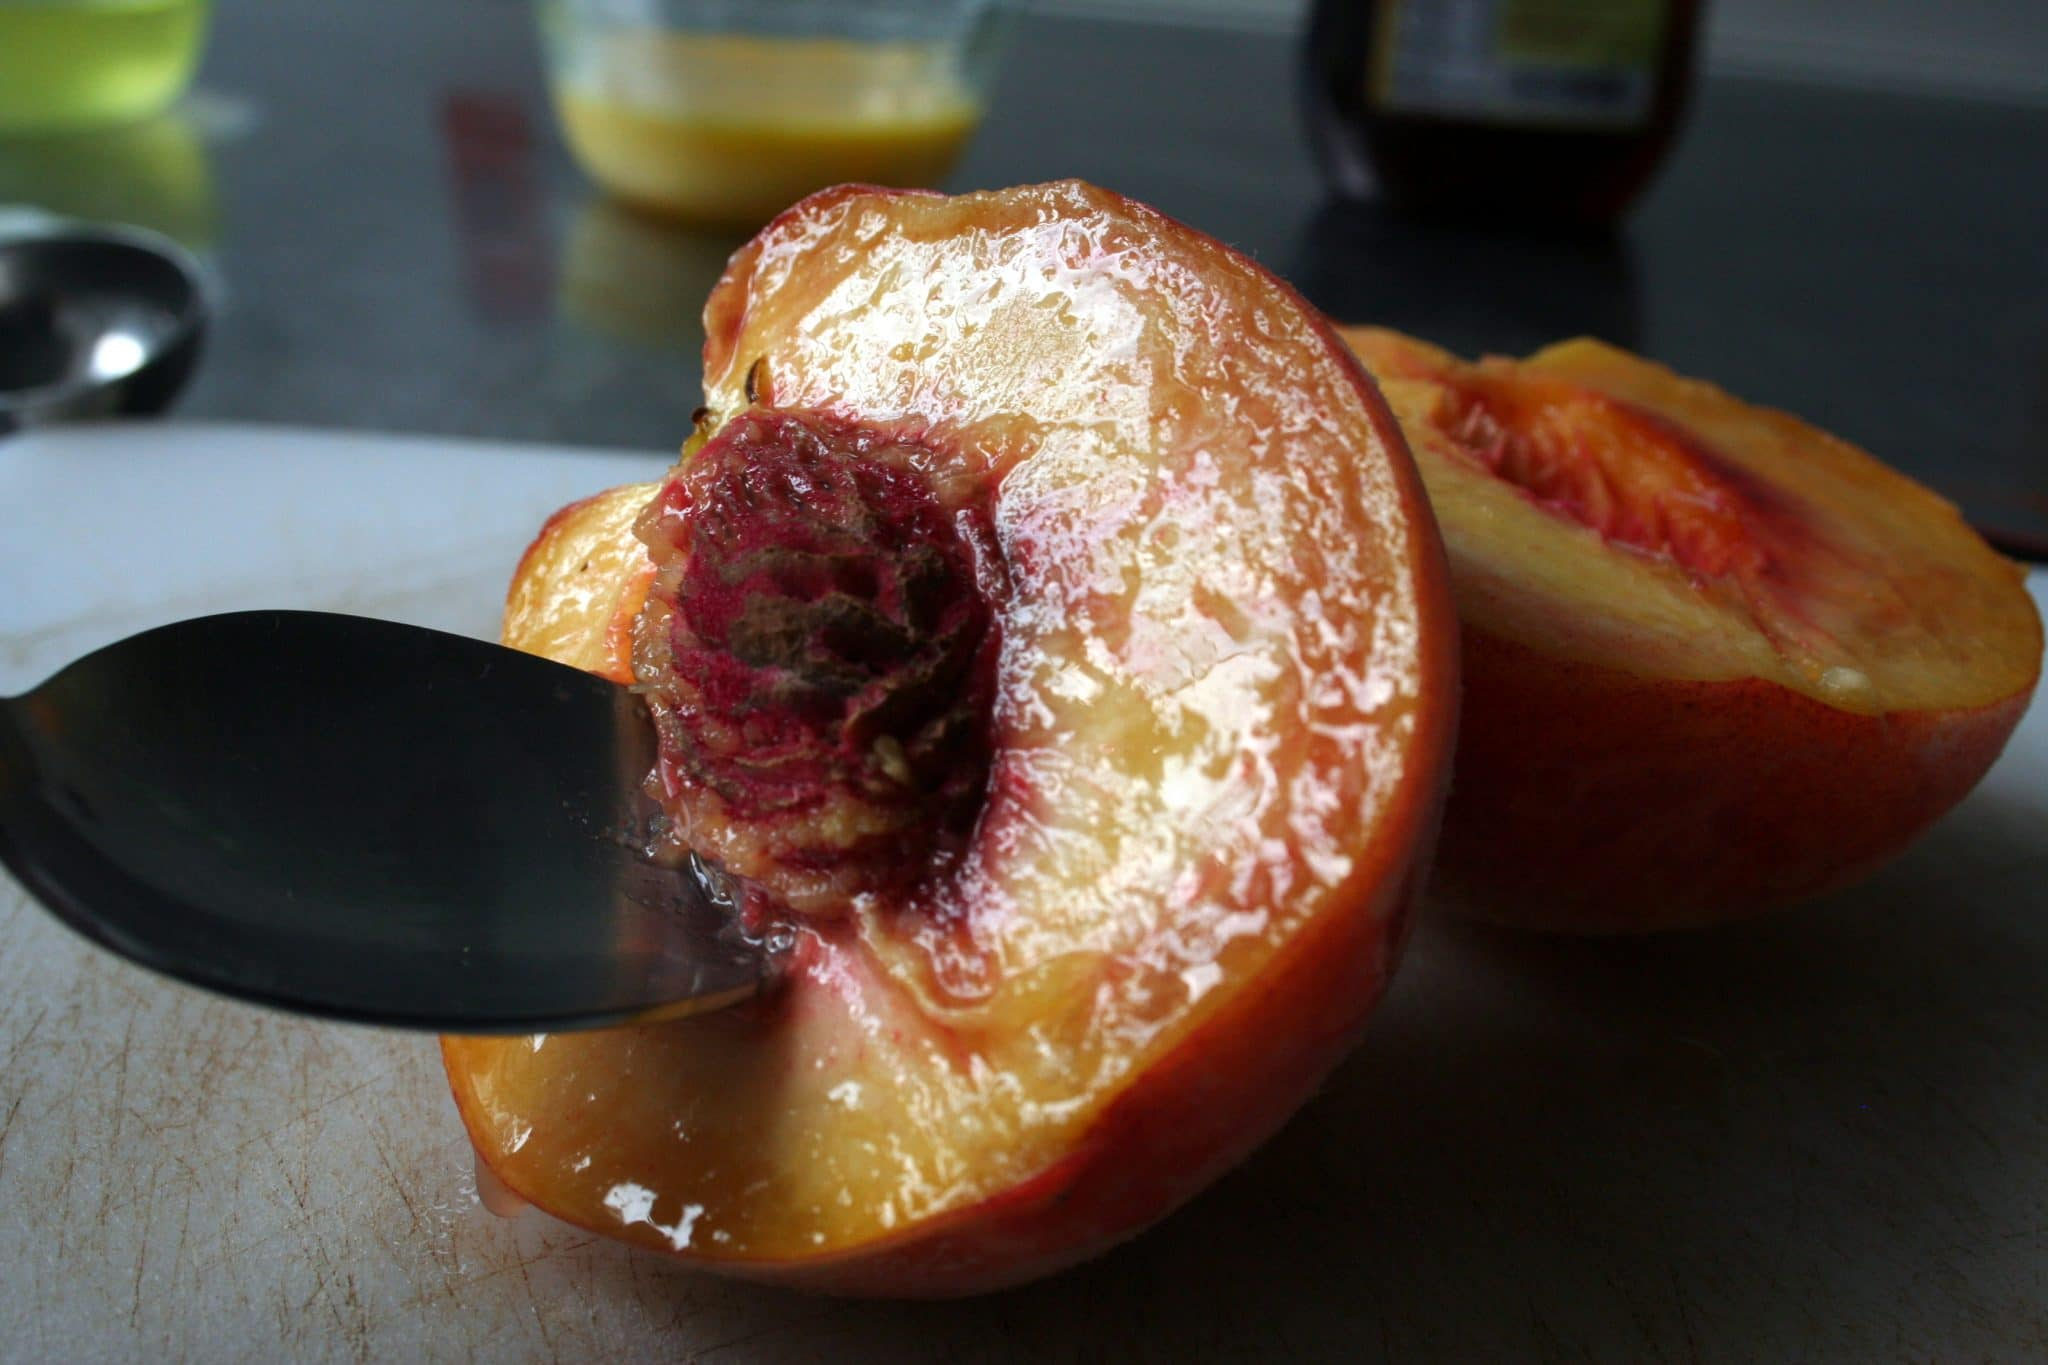 Spoon scooping pit out of peaches